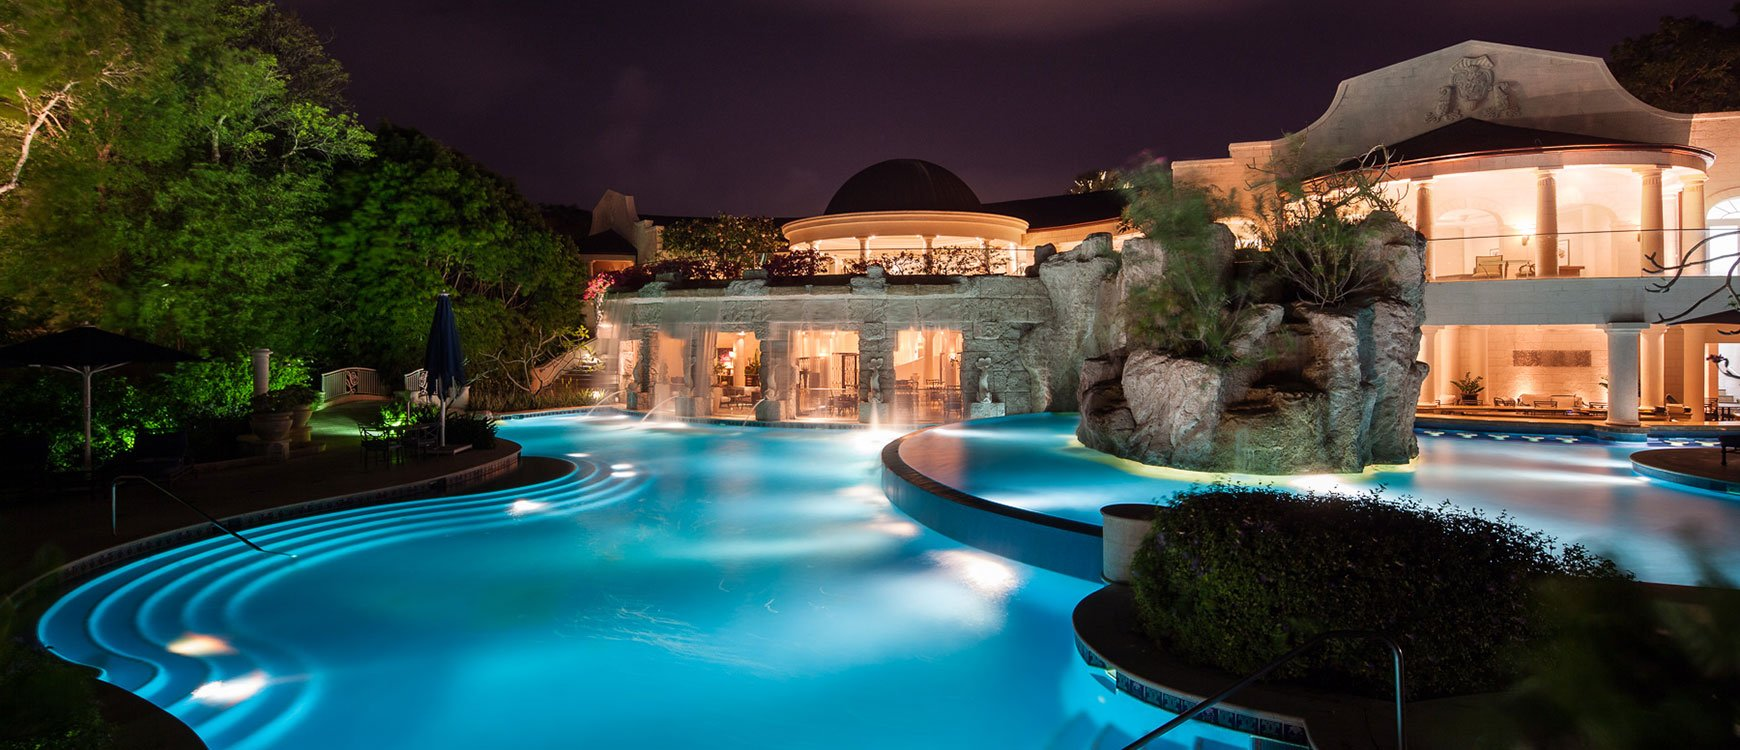 perrin amp rowe is specified into top hotels: perrin rowe lifestyle